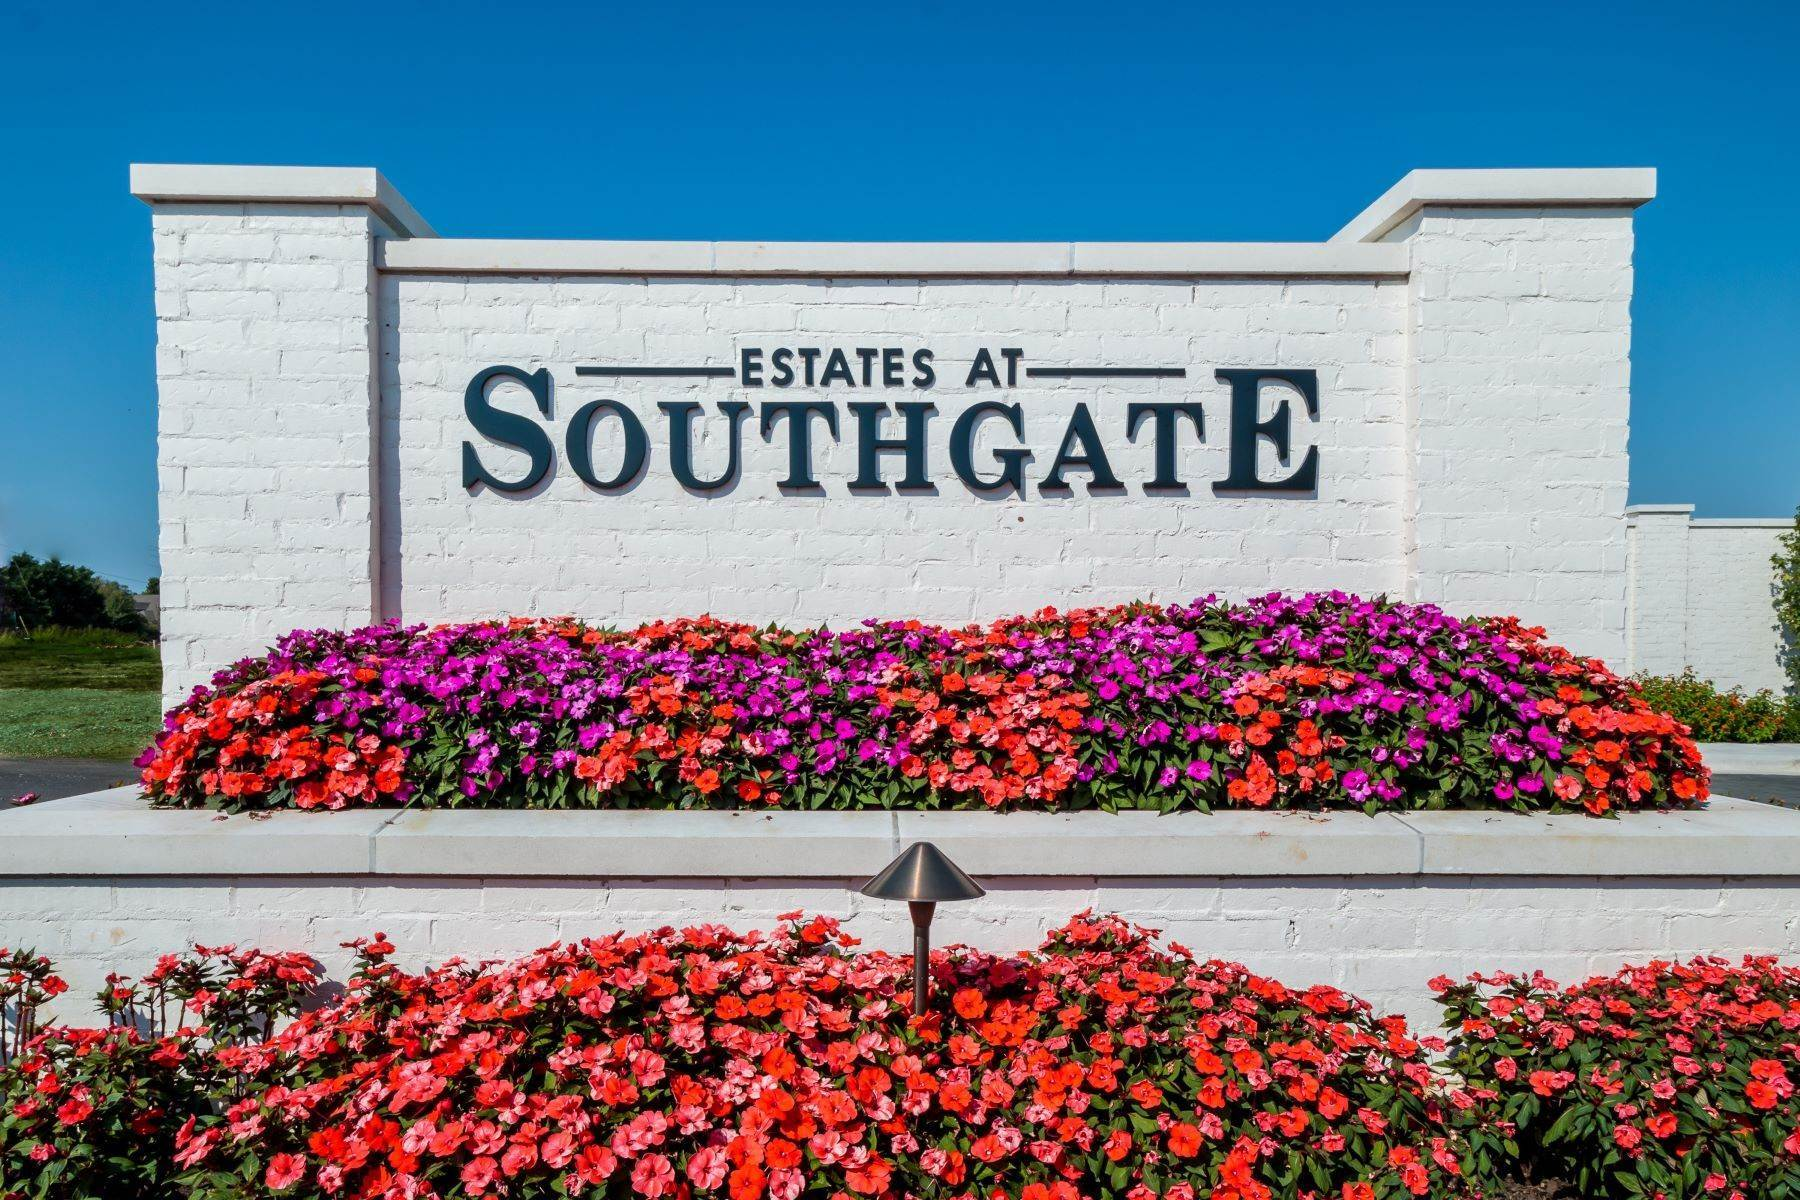 Land for Sale at Lot 7 Estates at Southgate 4812 Southgate Estates Circle Rogers, Arkansas 72758 United States